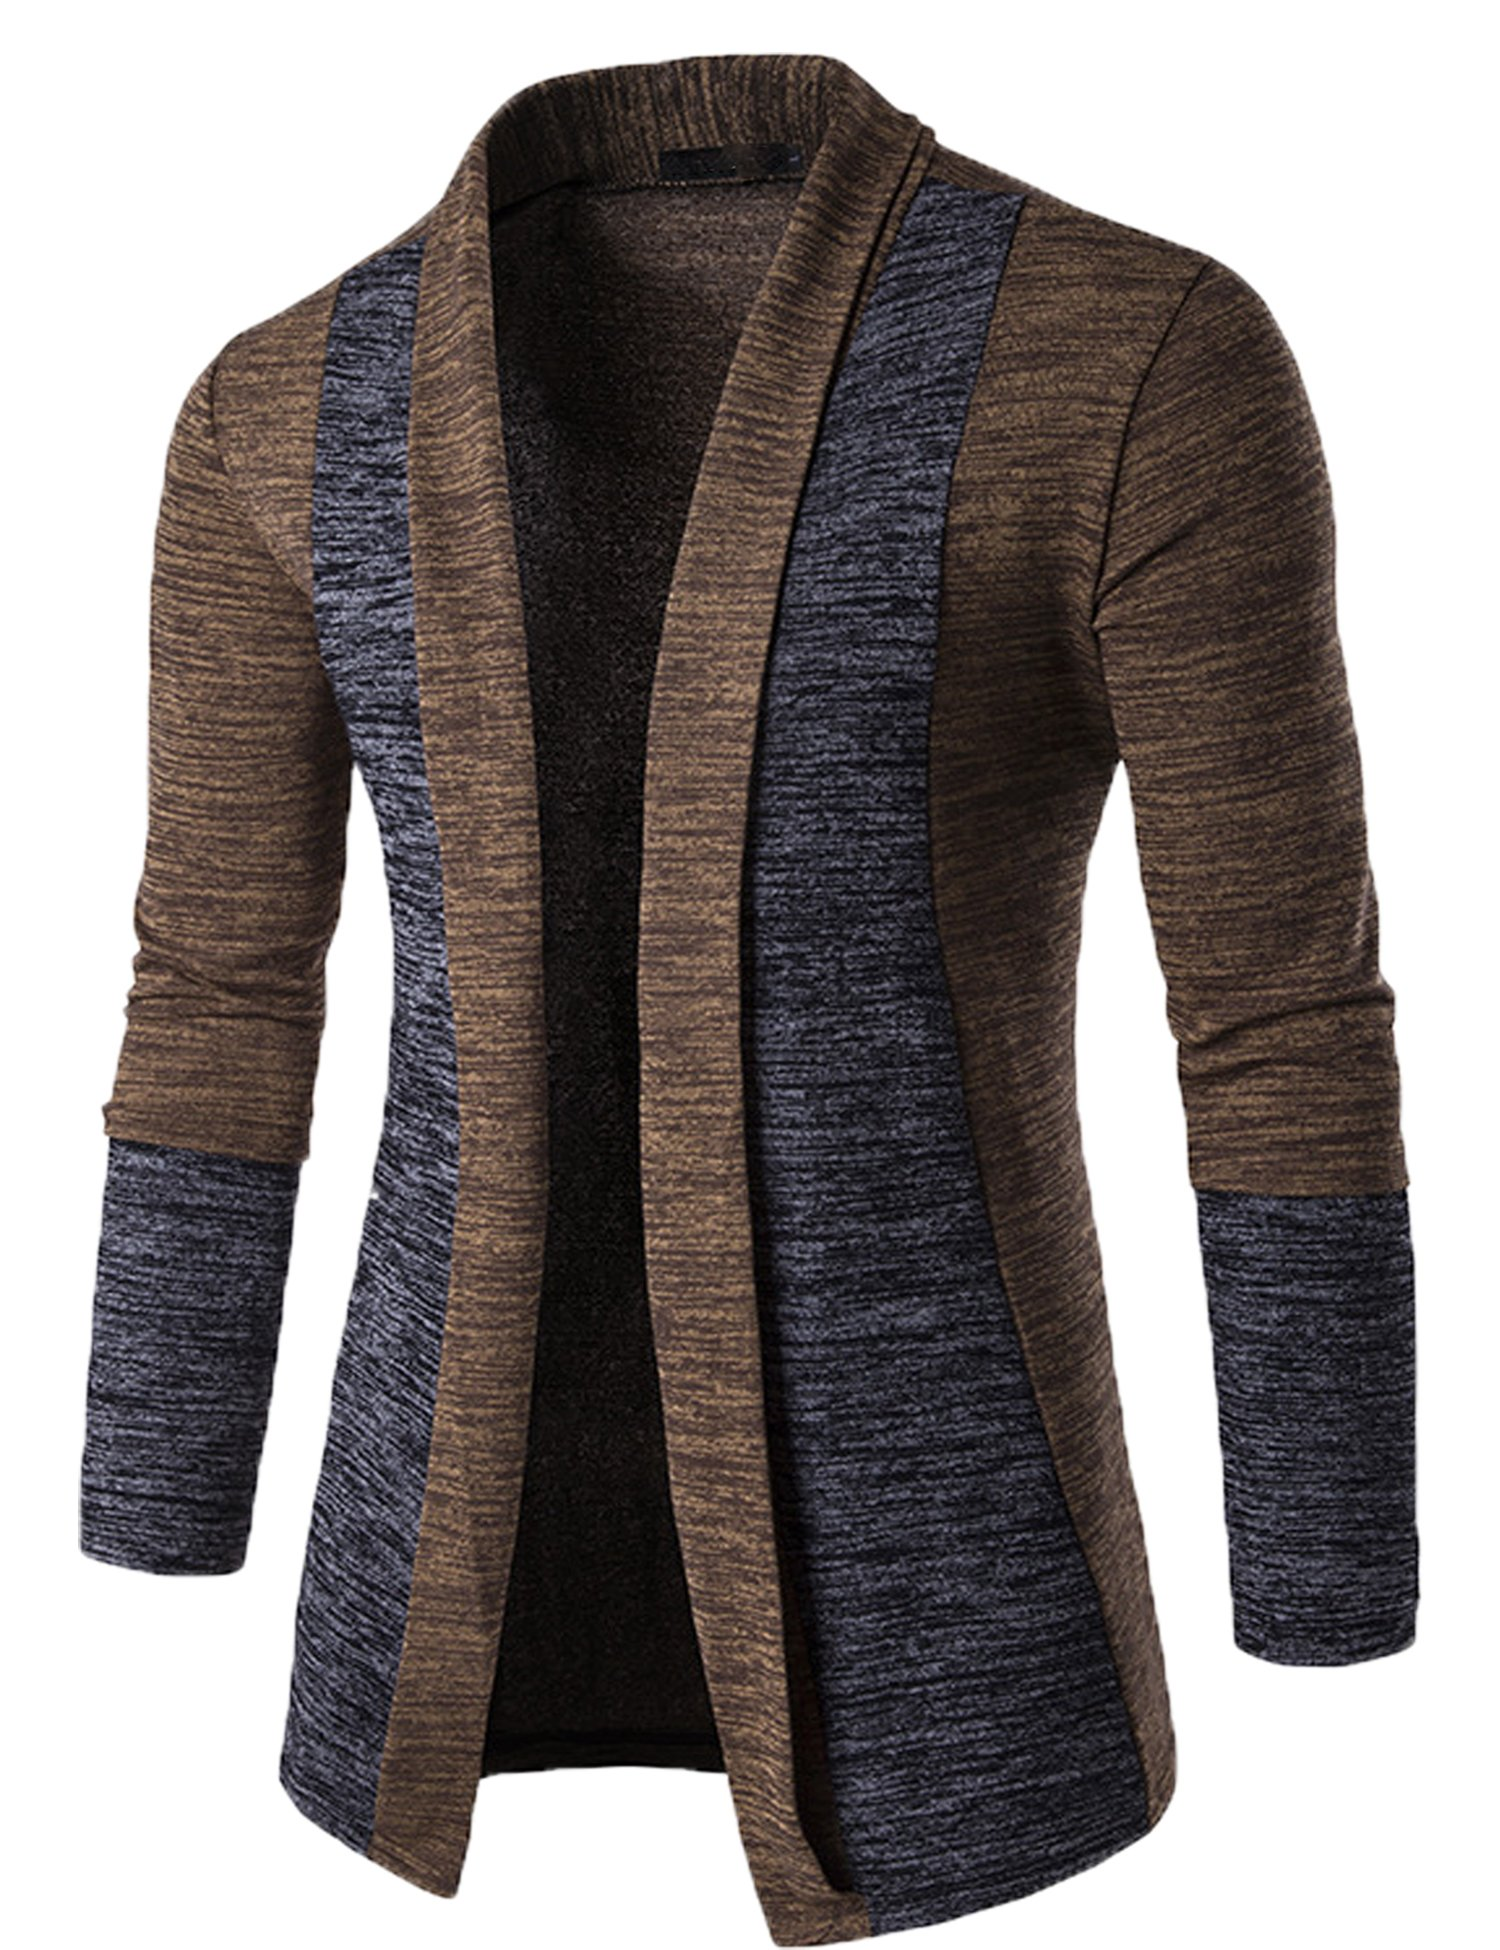 Modfine Men's Casual Cardigans Long Sleeve Slim Fit Open Front Shawl Collar Cardigans(Coffee 2,M)